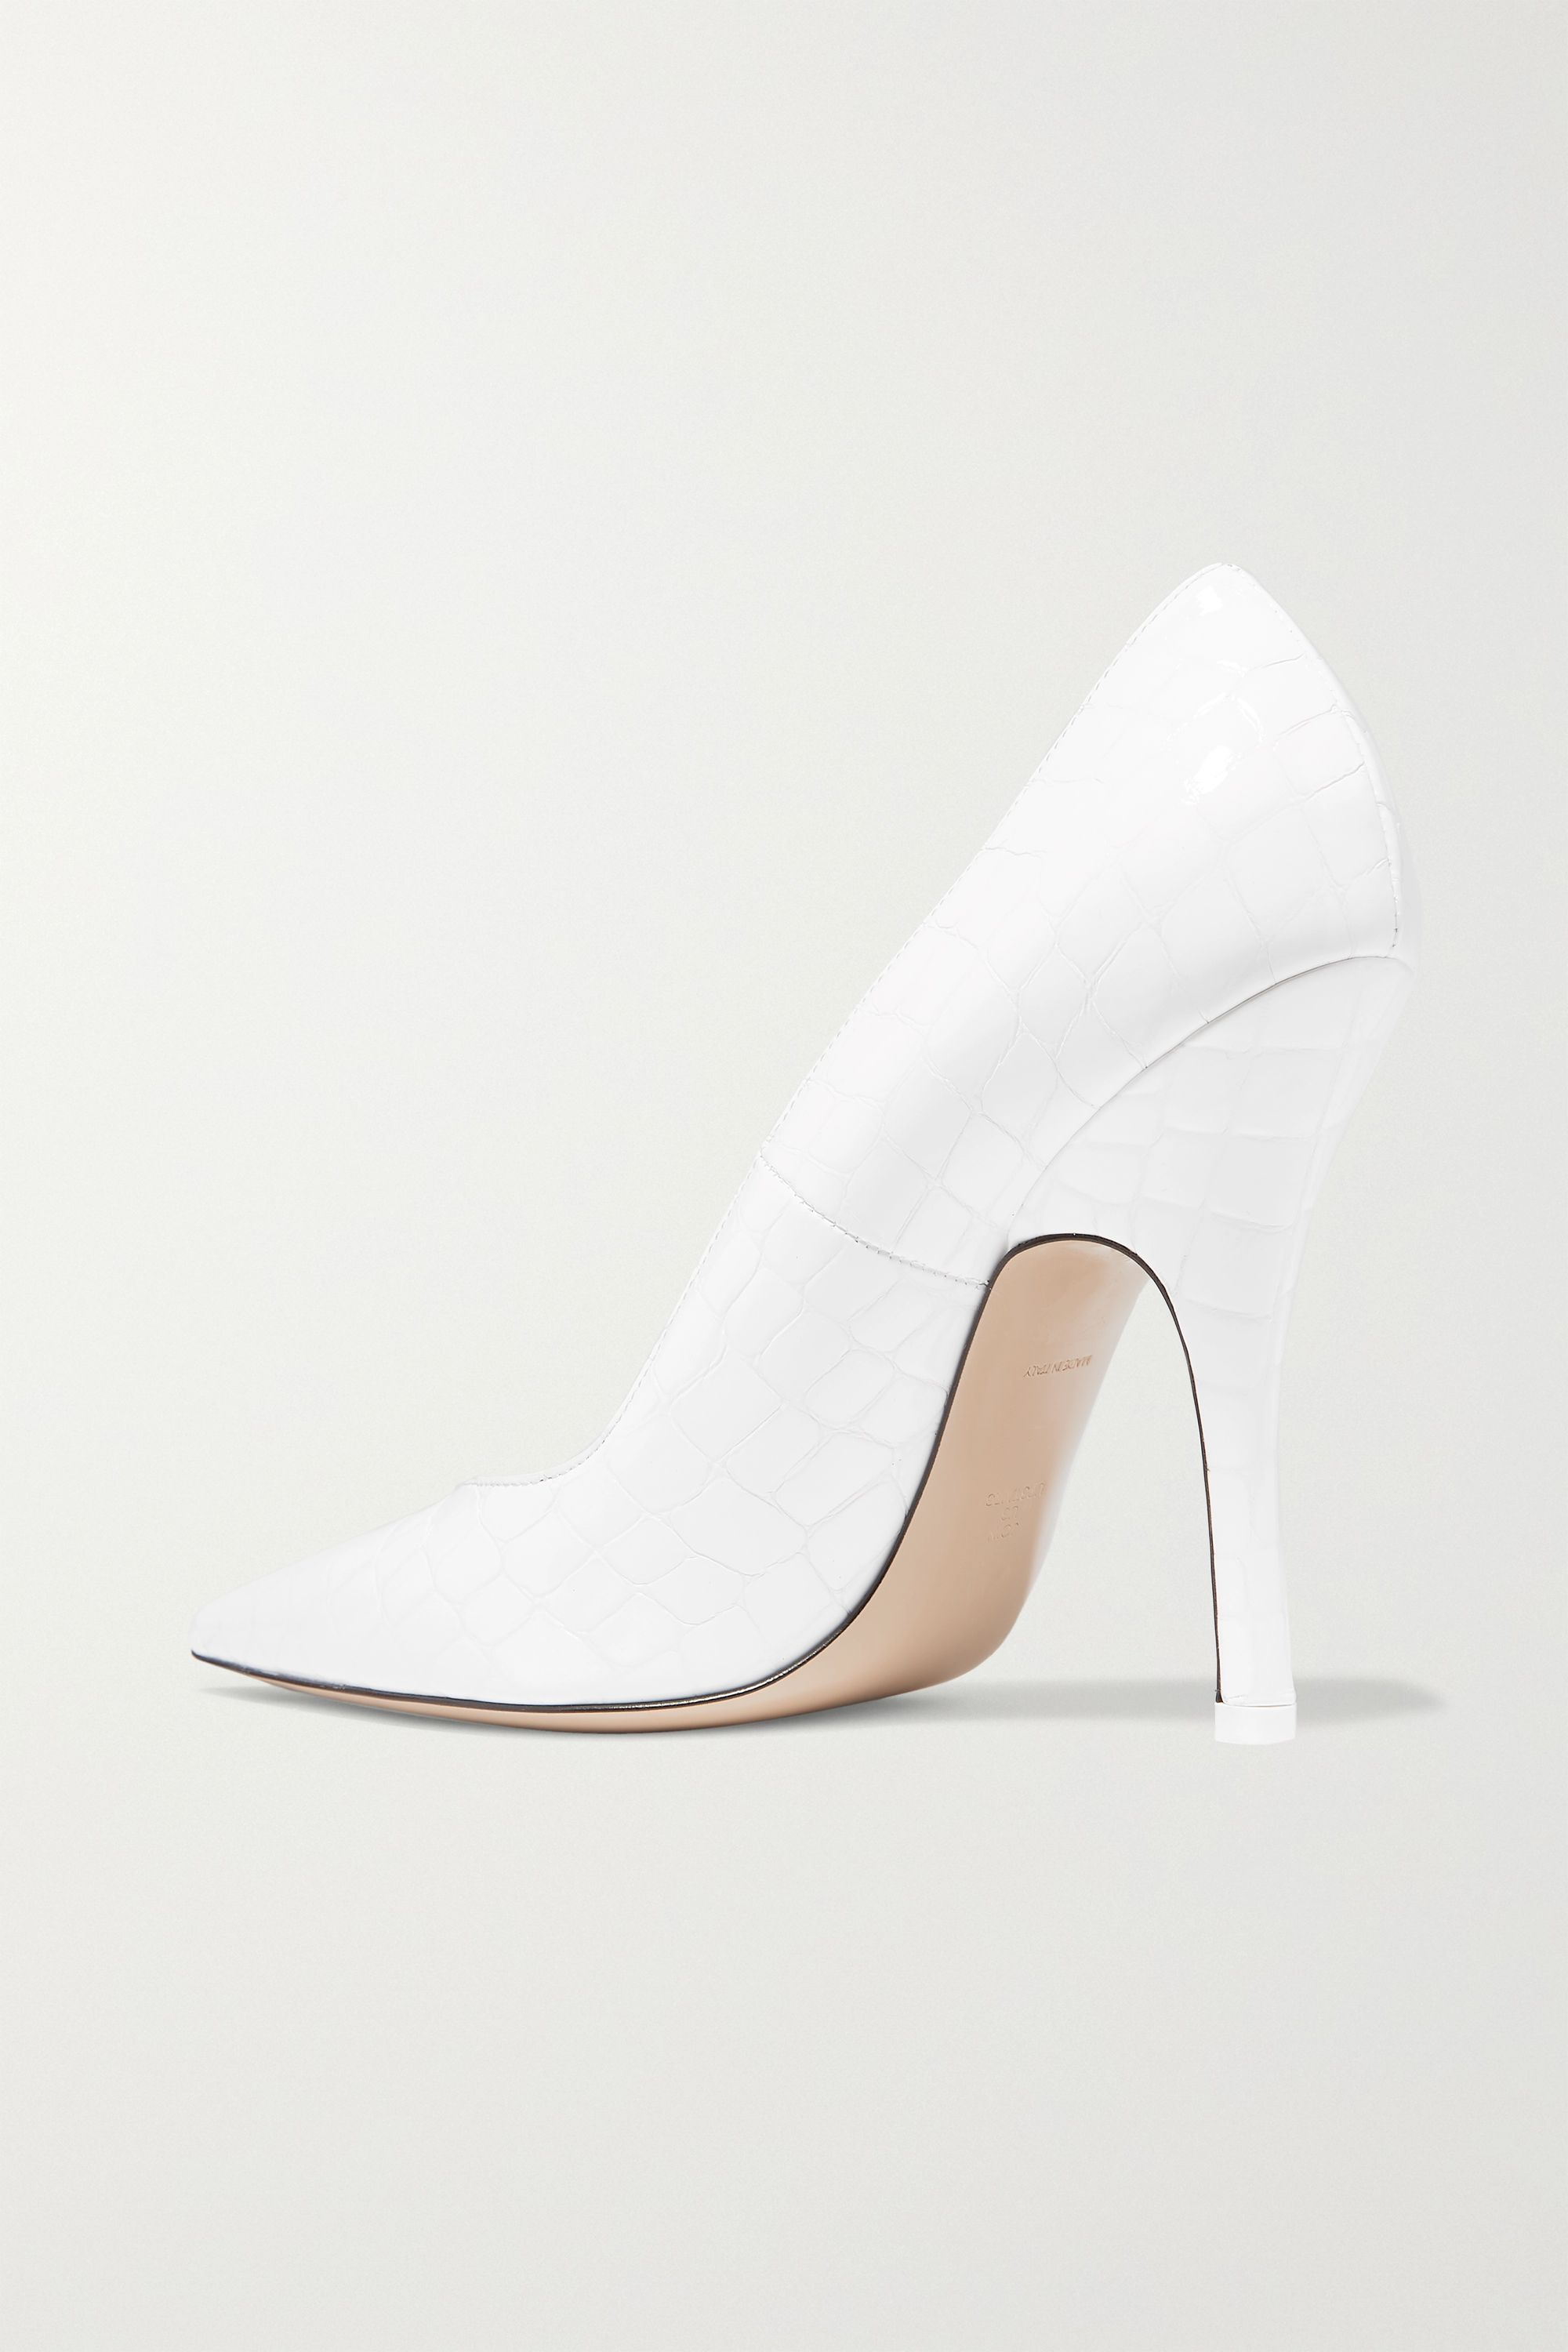 The Attico Sophie glossed croc-effect leather pumps